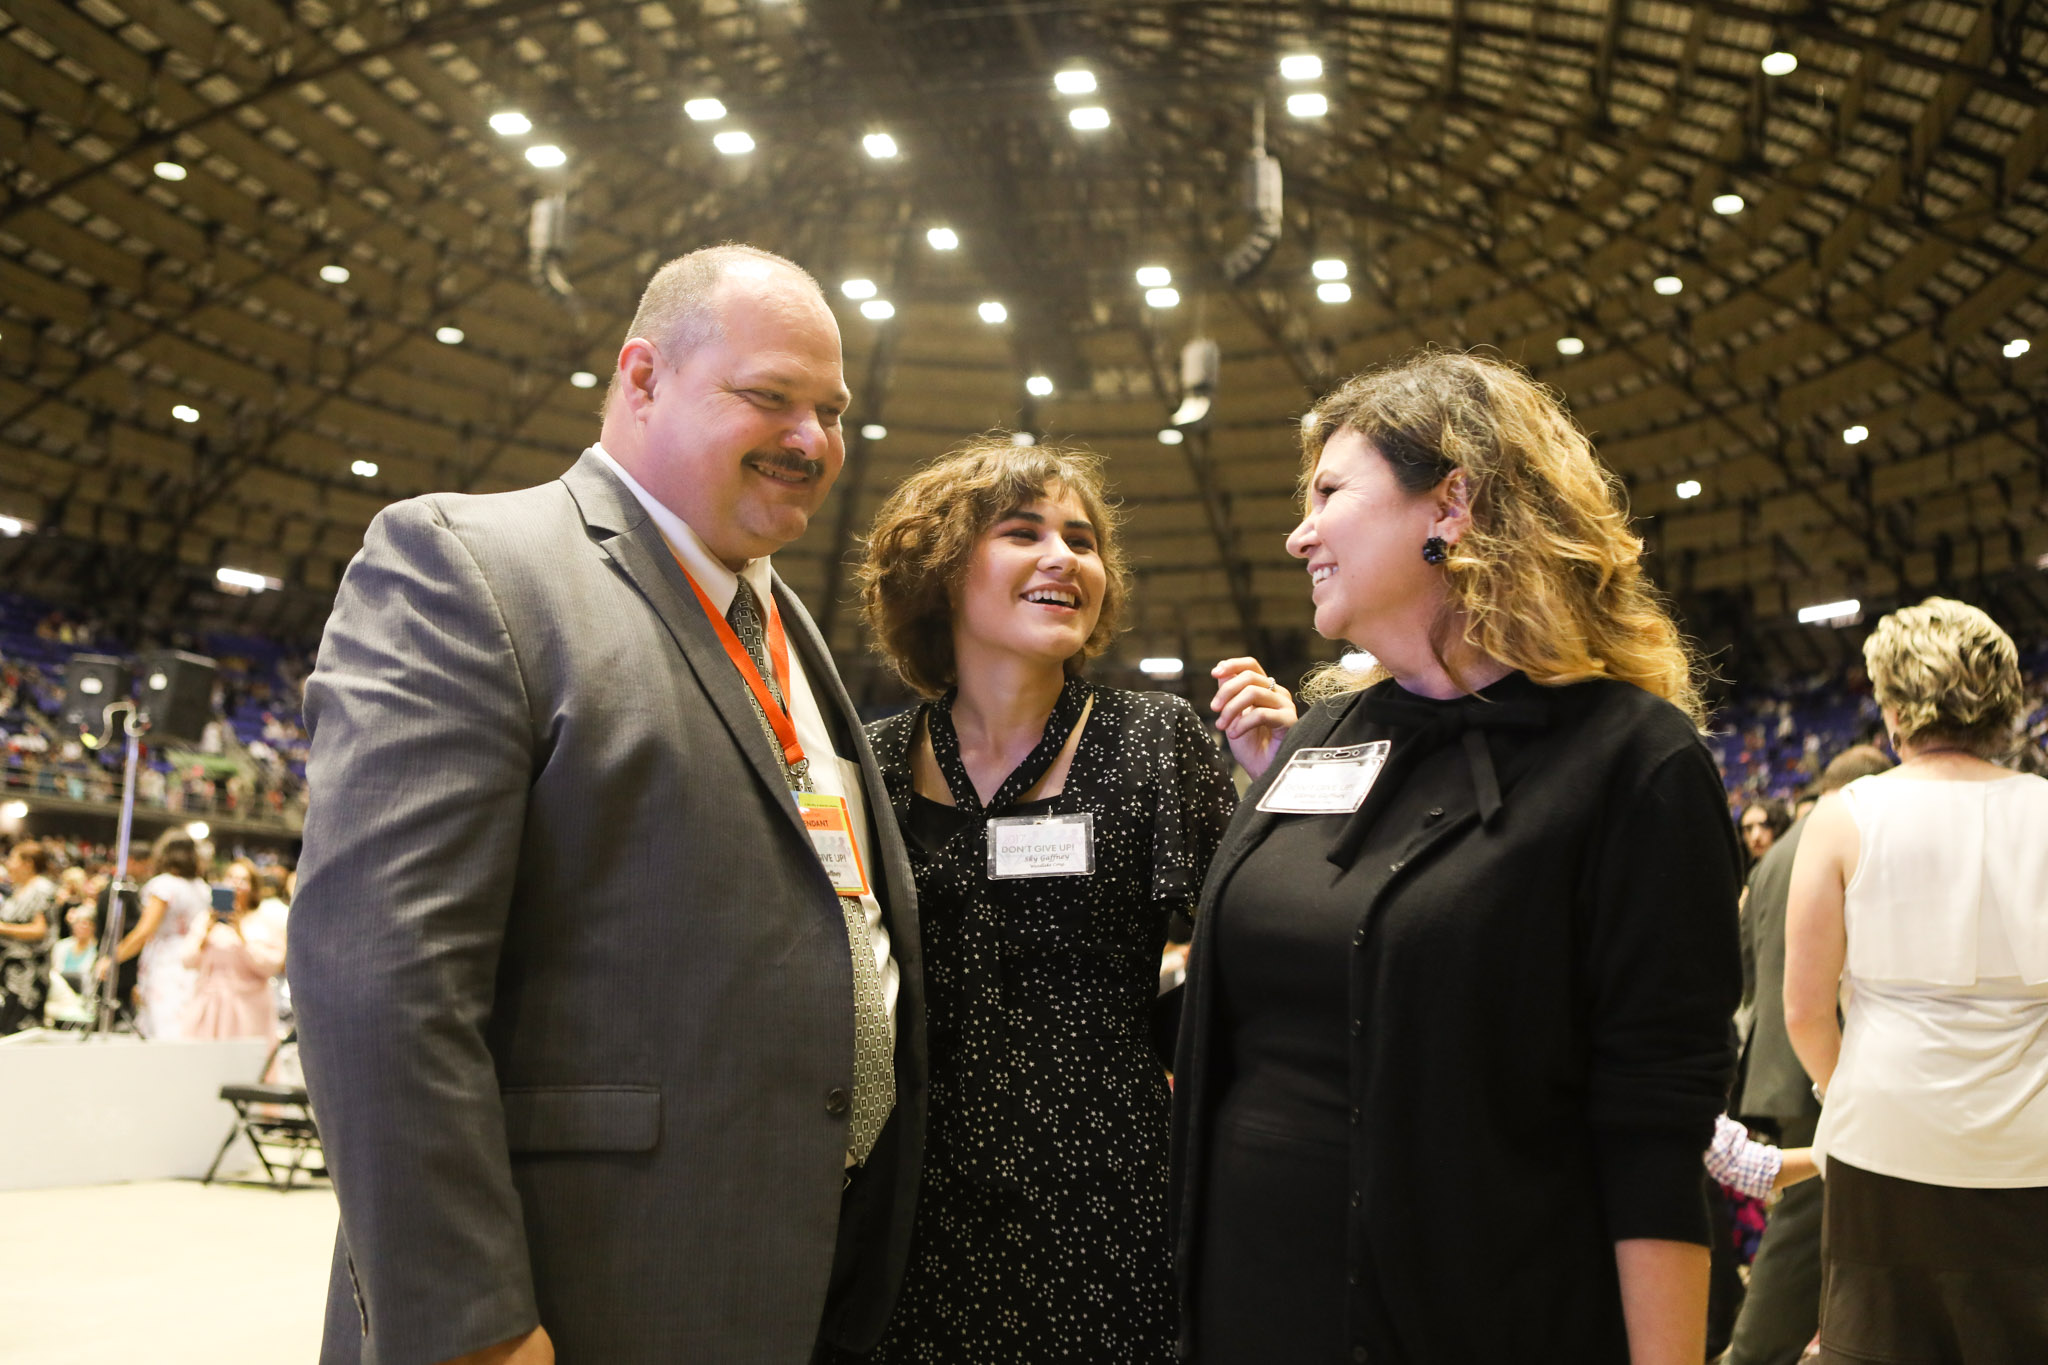 (From left) Mike Gaffney, Sky, 15, and Gloria Gaffney share a laugh during the 2017 convention of Jehovah's Witnesses in the Freeman Coliseum.